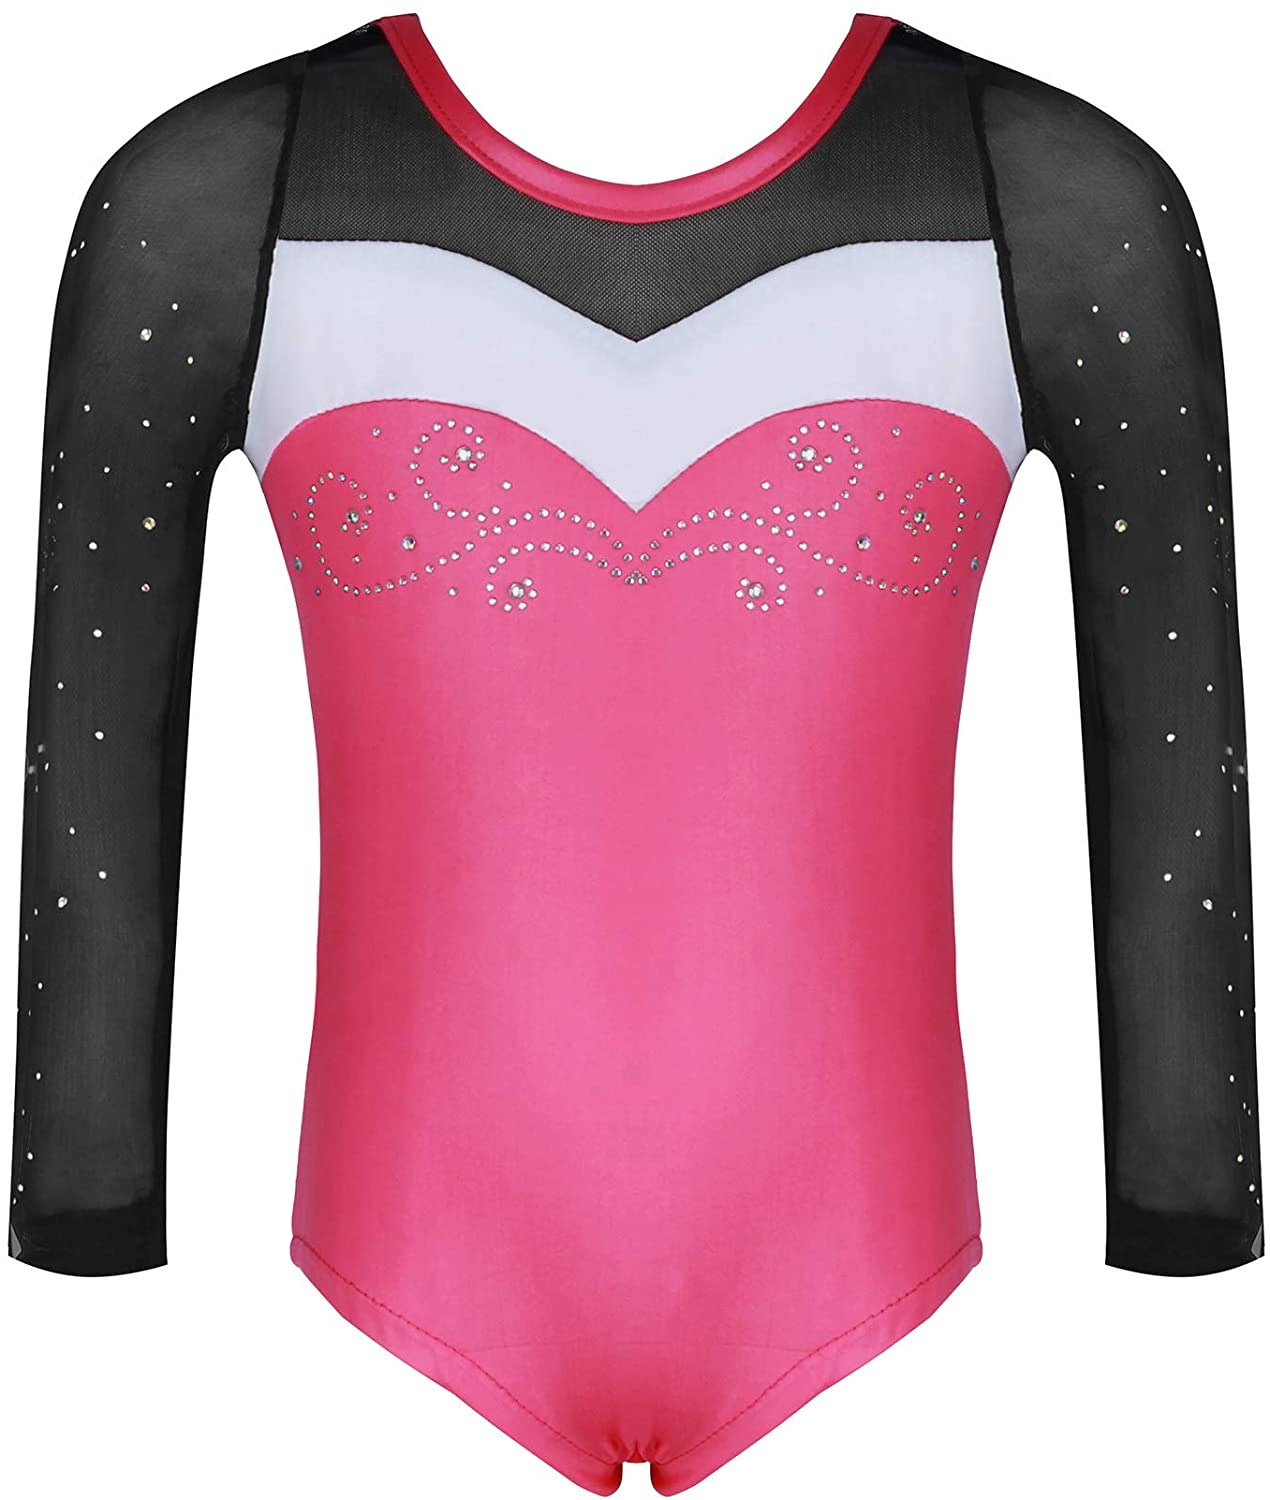 Molliya Girls Gymnastics Leotard Long Sleeve One-Piece Sparkly Colorful Ballet Dance Leotards Practice Outfit 4-10 Years